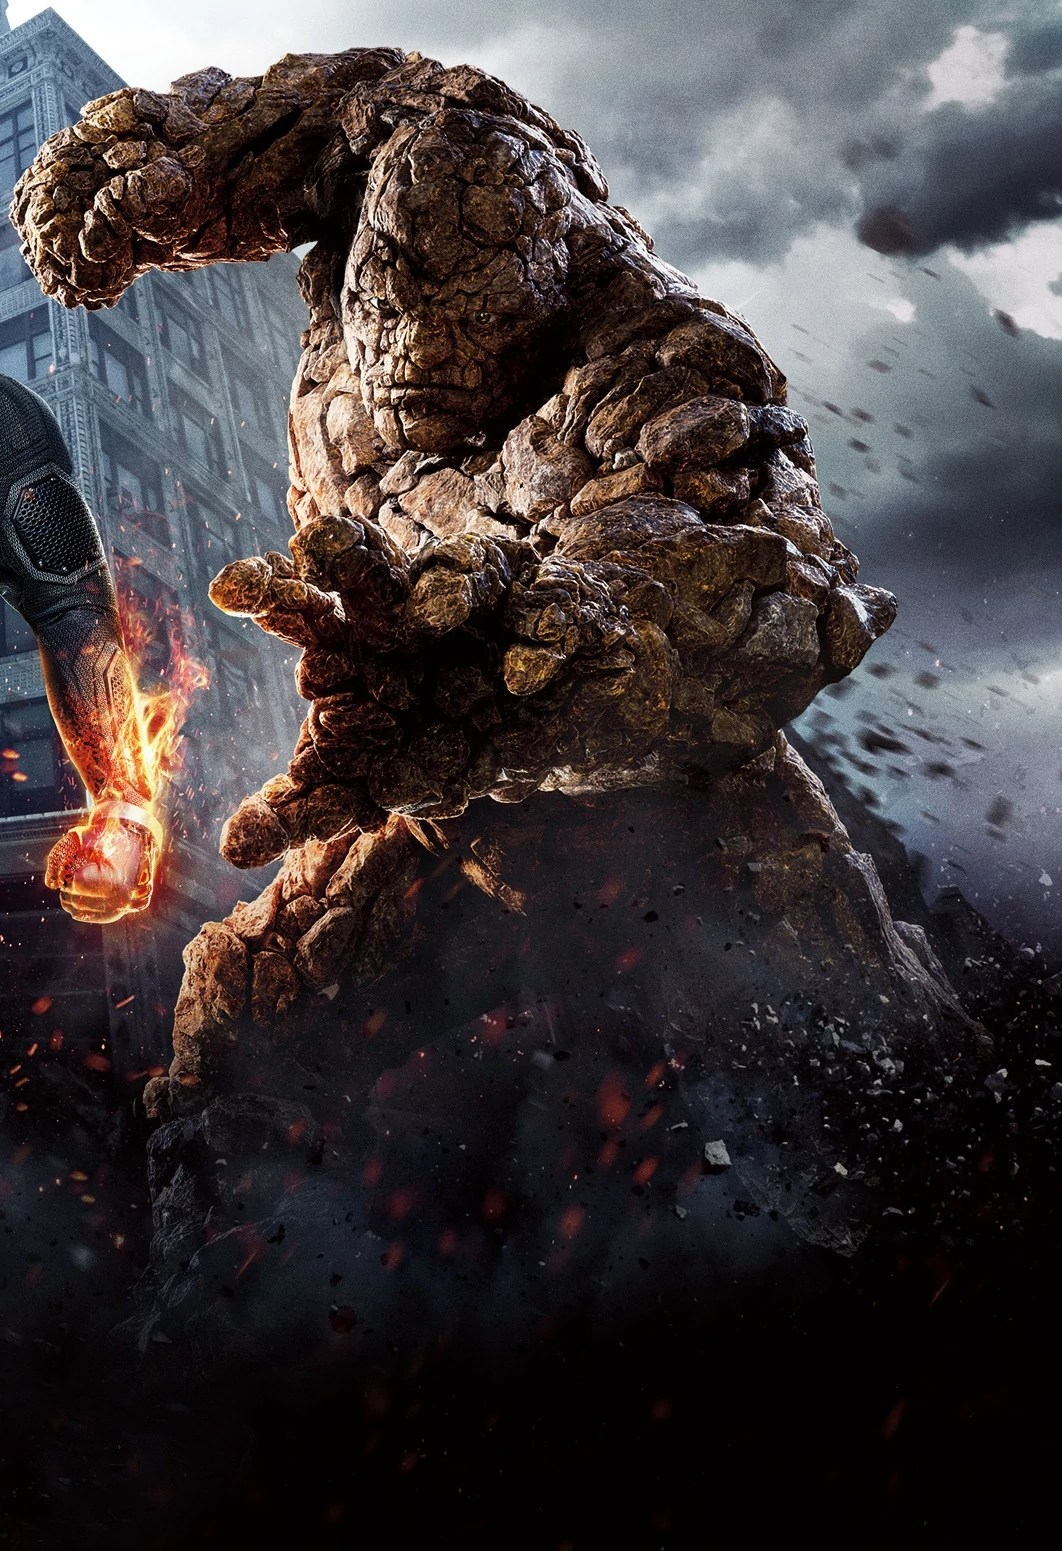 The Thing Trank Series Fantastic Four Movies Wiki